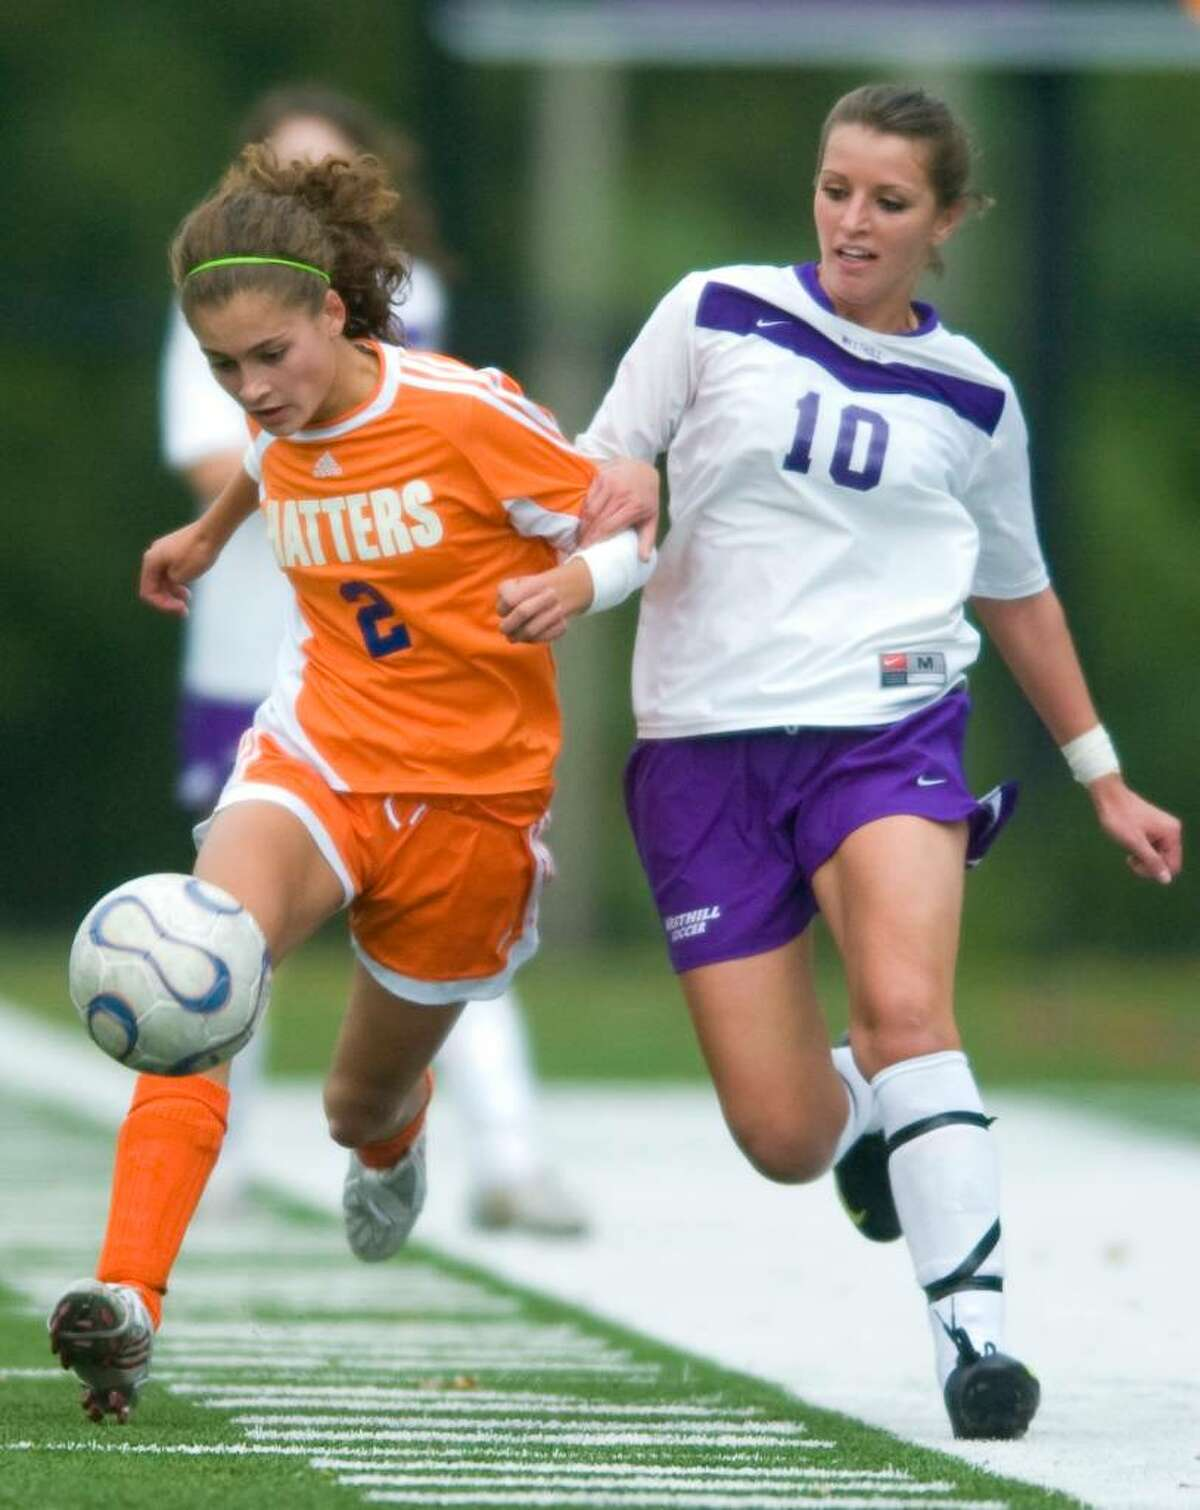 Danbury's Lexi Corte-Real, left, and Westhill's Aulona Velaj, right, during an FCIAC girls soccer match at Westhill High School in Stamford on Wednesday, Sept. 30, 2009.